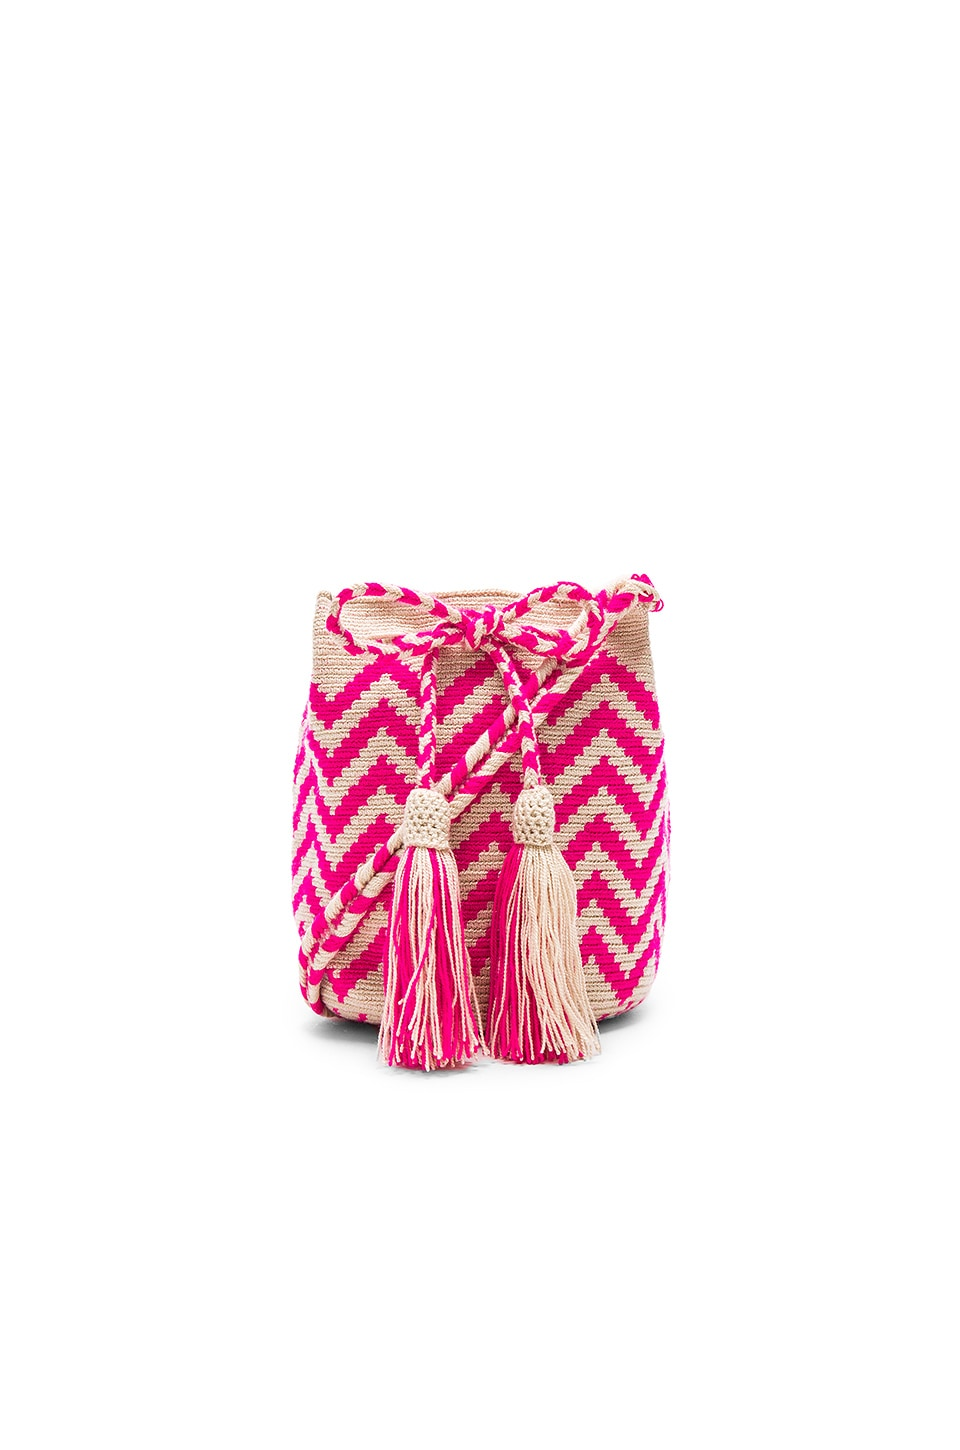 Guanabana Zig Zag Medium Bucket Bag in Pink